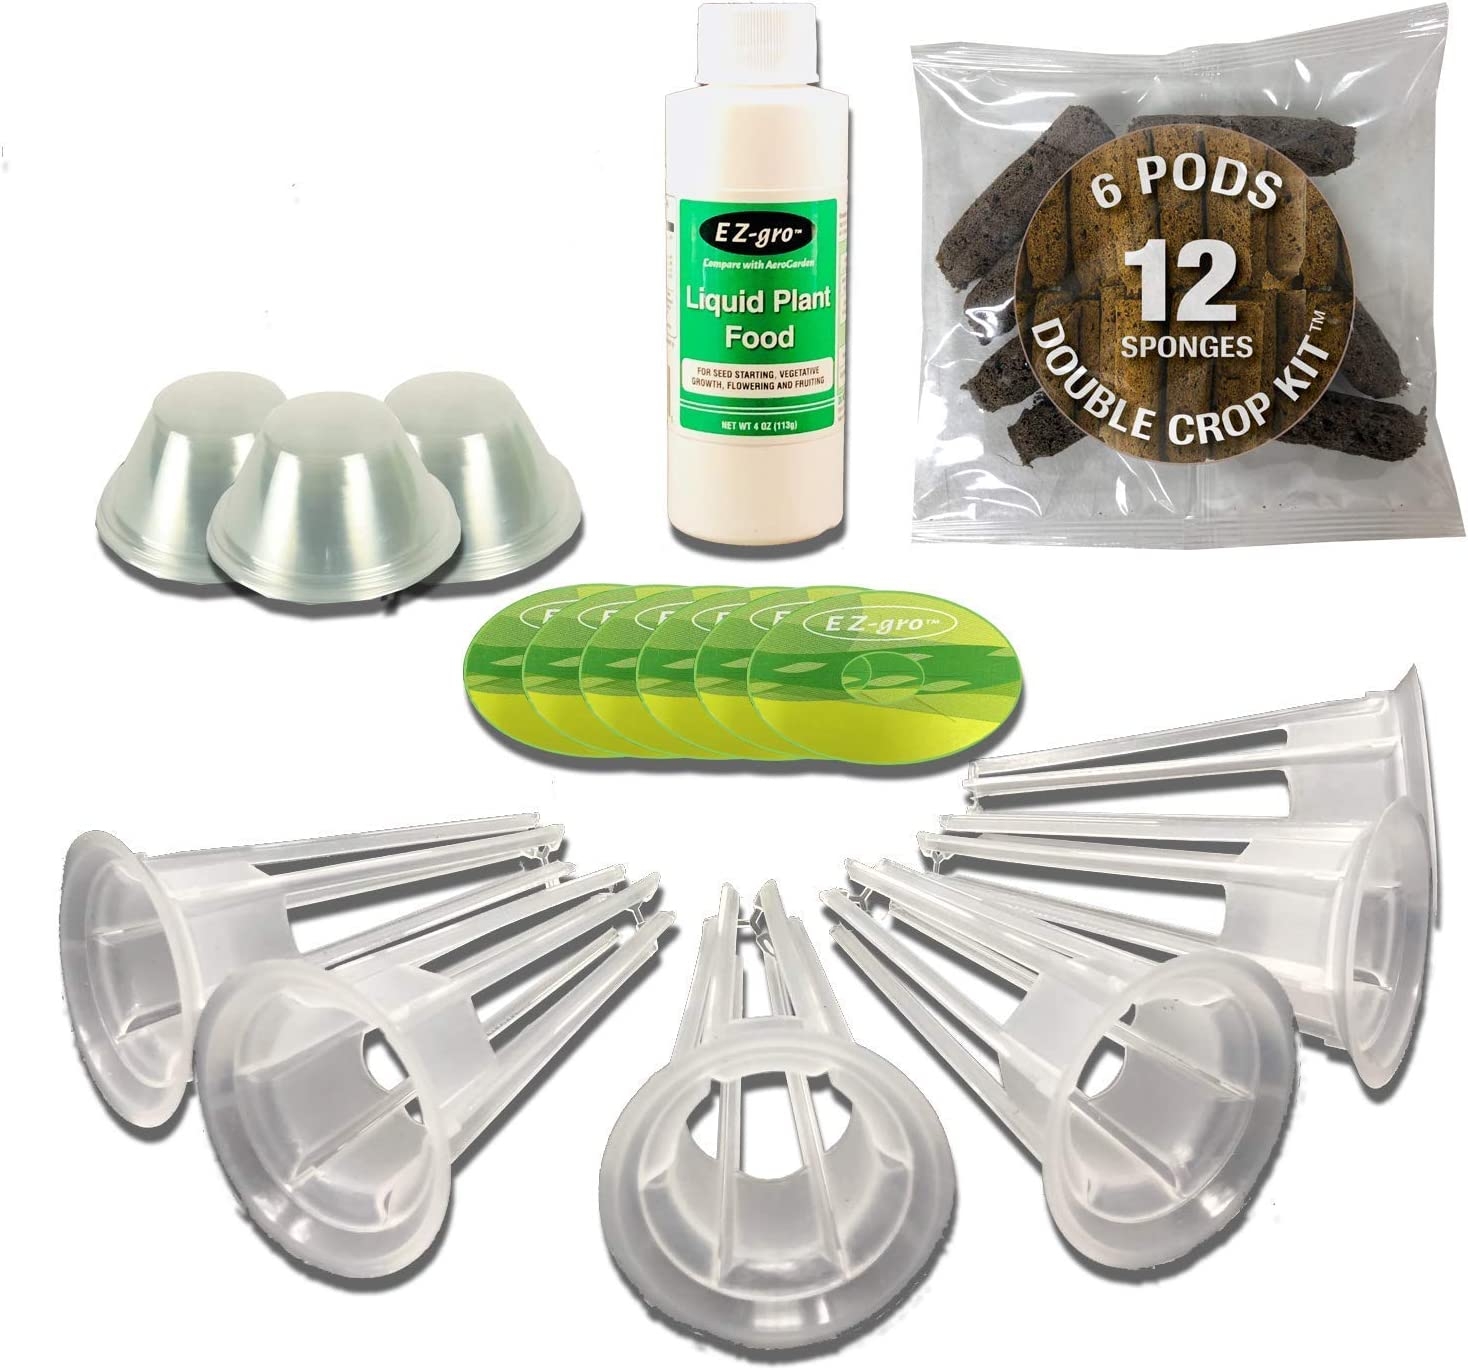 Seedless Double Crop Kit (6 Pod) Compatible with Aerogardens by EZ-gro | Double Sponges for 2 Crops | Peel and Stick Labels | 25% More Fertilizer | Compatible with All Aerogarden Pods